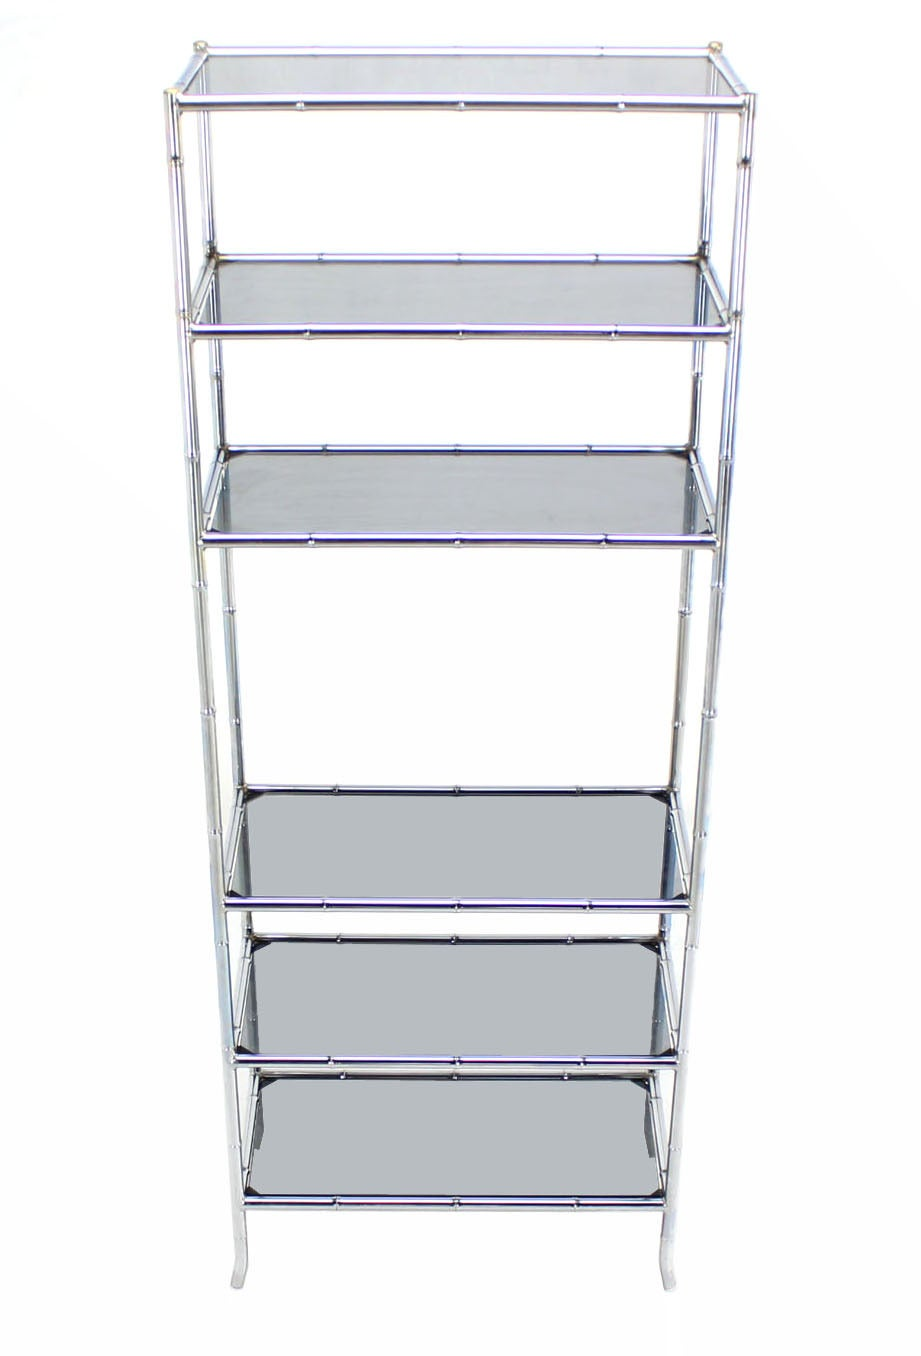 chrome faux bamboo etagere unit with smoked glass shelves at 1stdibs. Black Bedroom Furniture Sets. Home Design Ideas